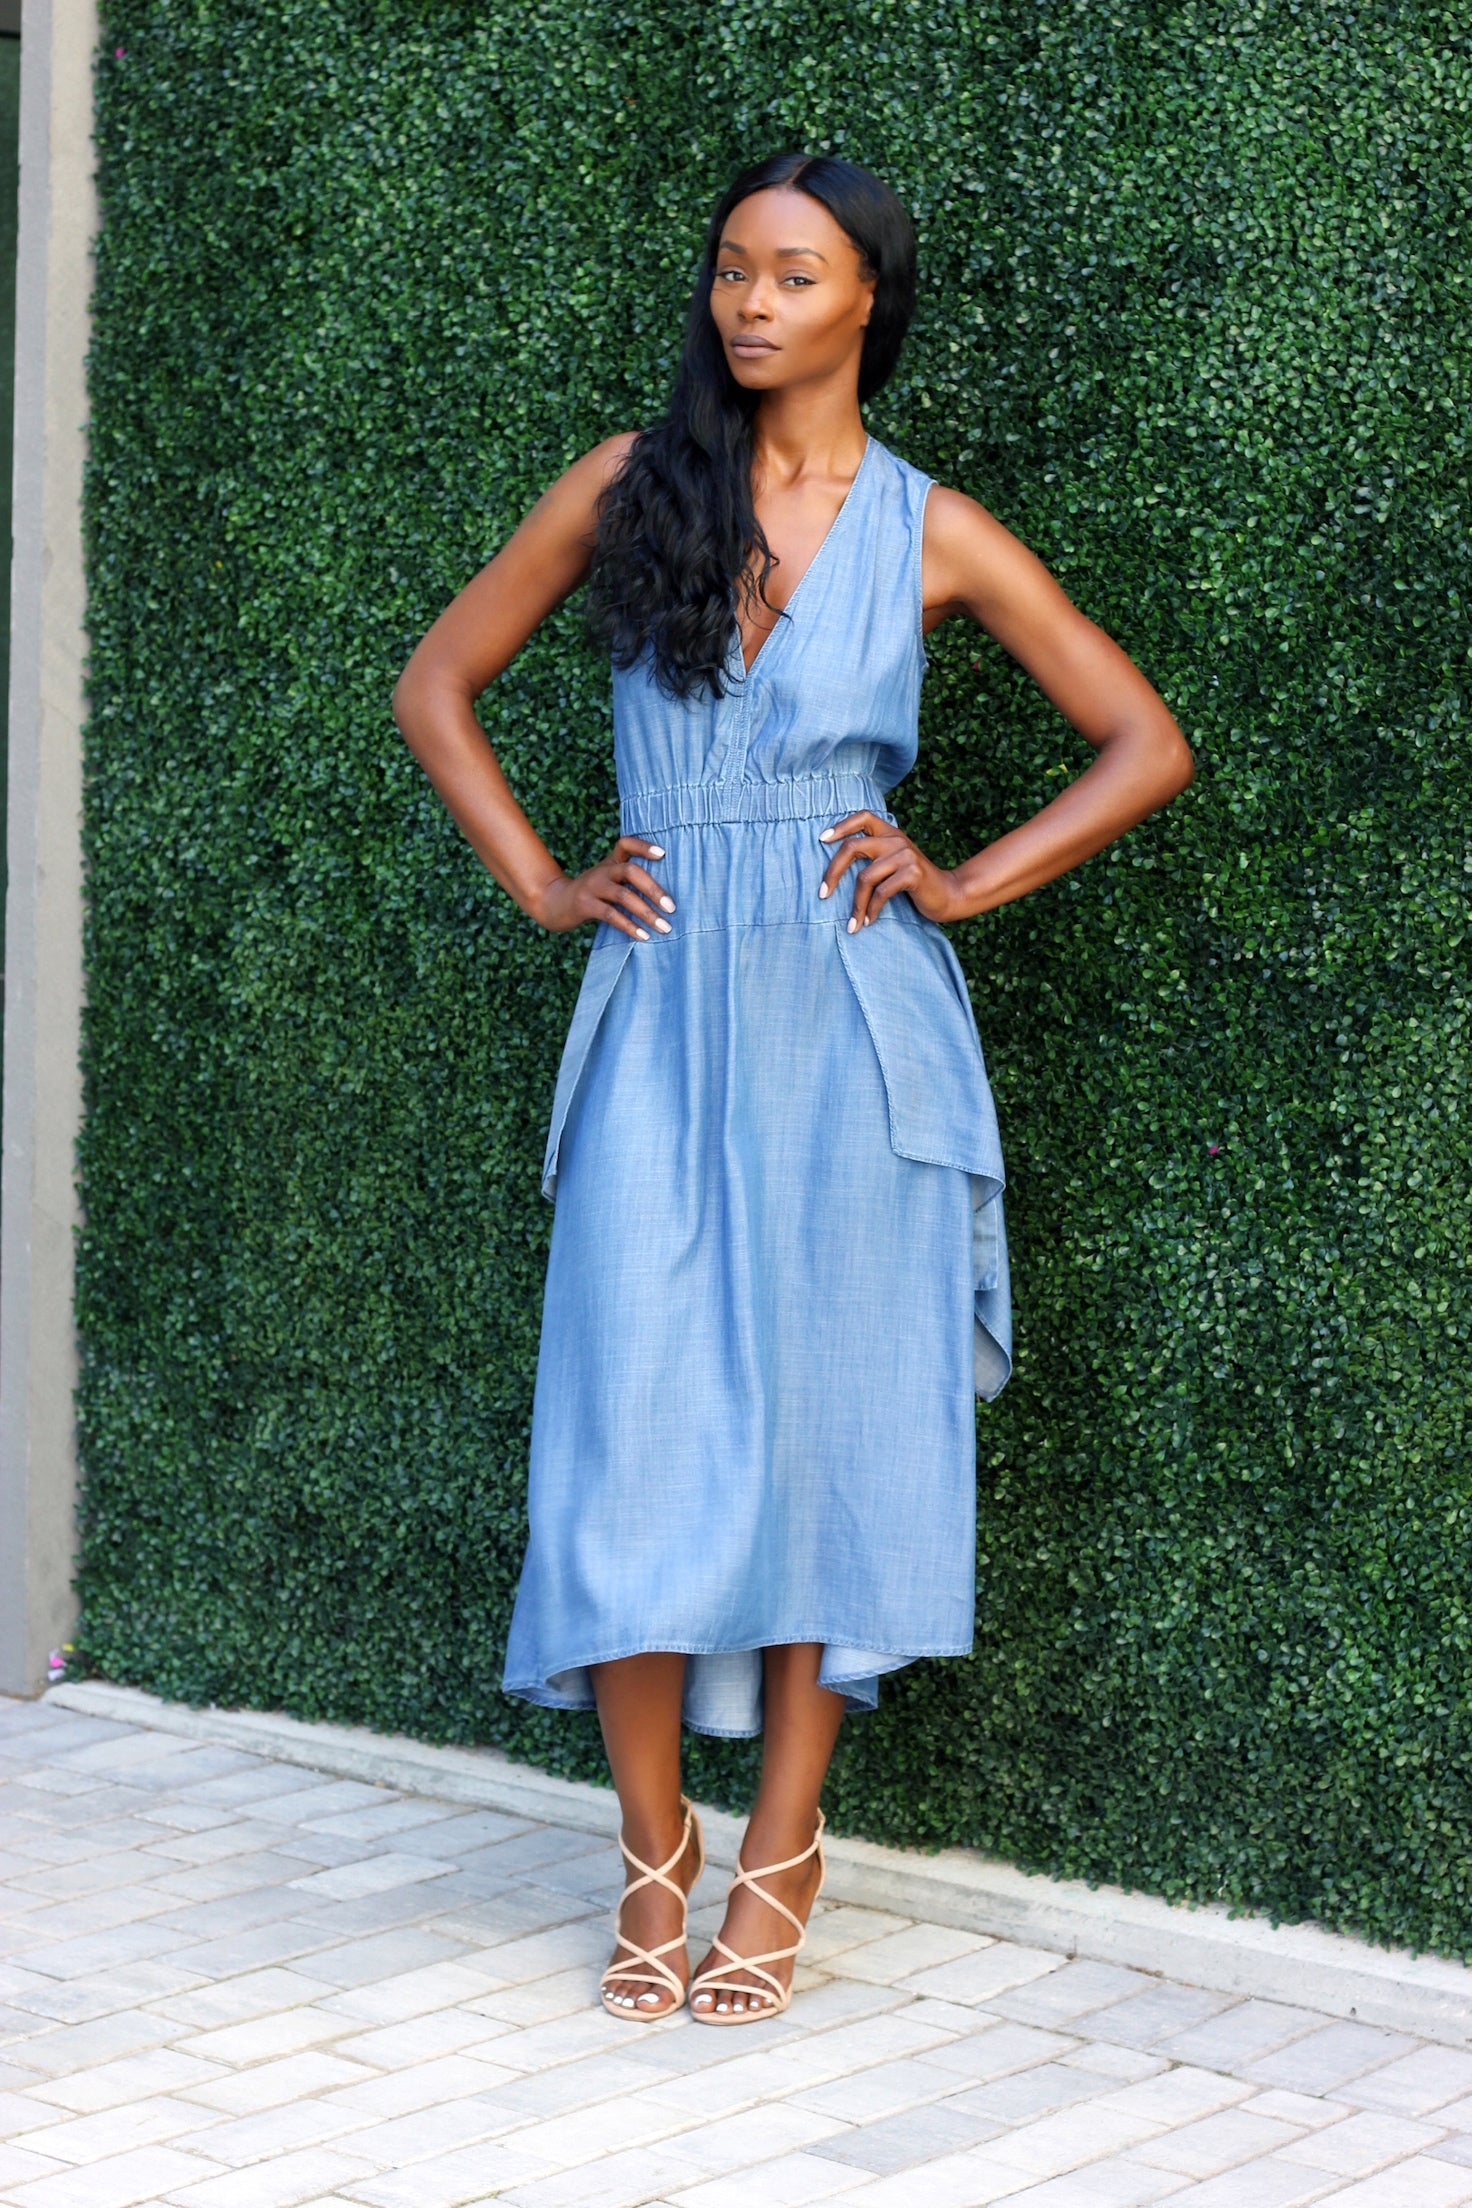 bc535e8c8d CHAMBRAY DENIM DRESS – Laced With Style